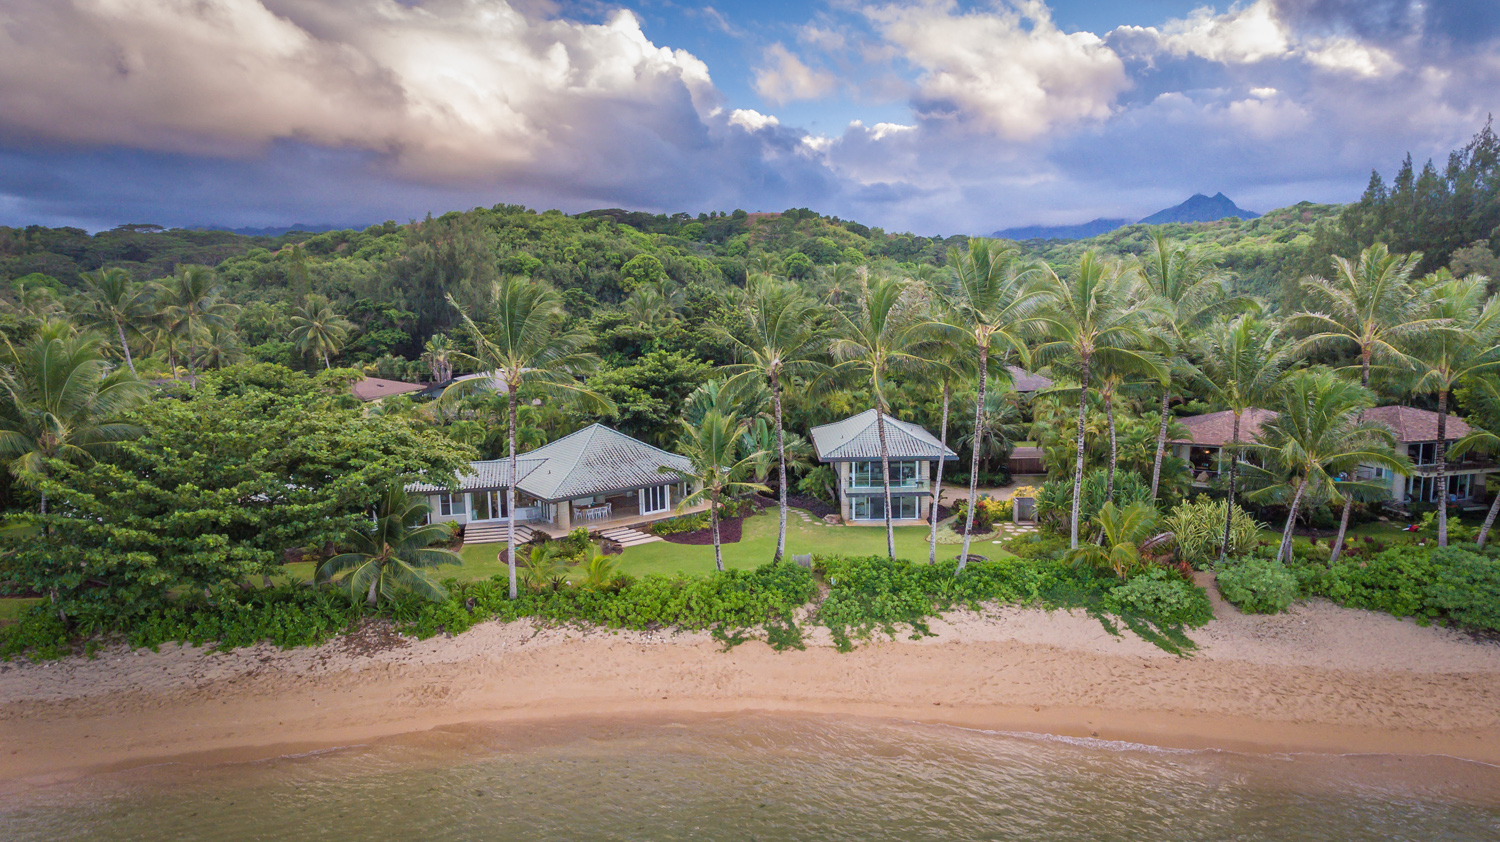 Anini Beach Kauai Vacation Al Keawaihi Is Set On A Roomy One Acre Oceanfront Site Landscaped With Swaying Palms Hala Native Naupaka And Fragrant